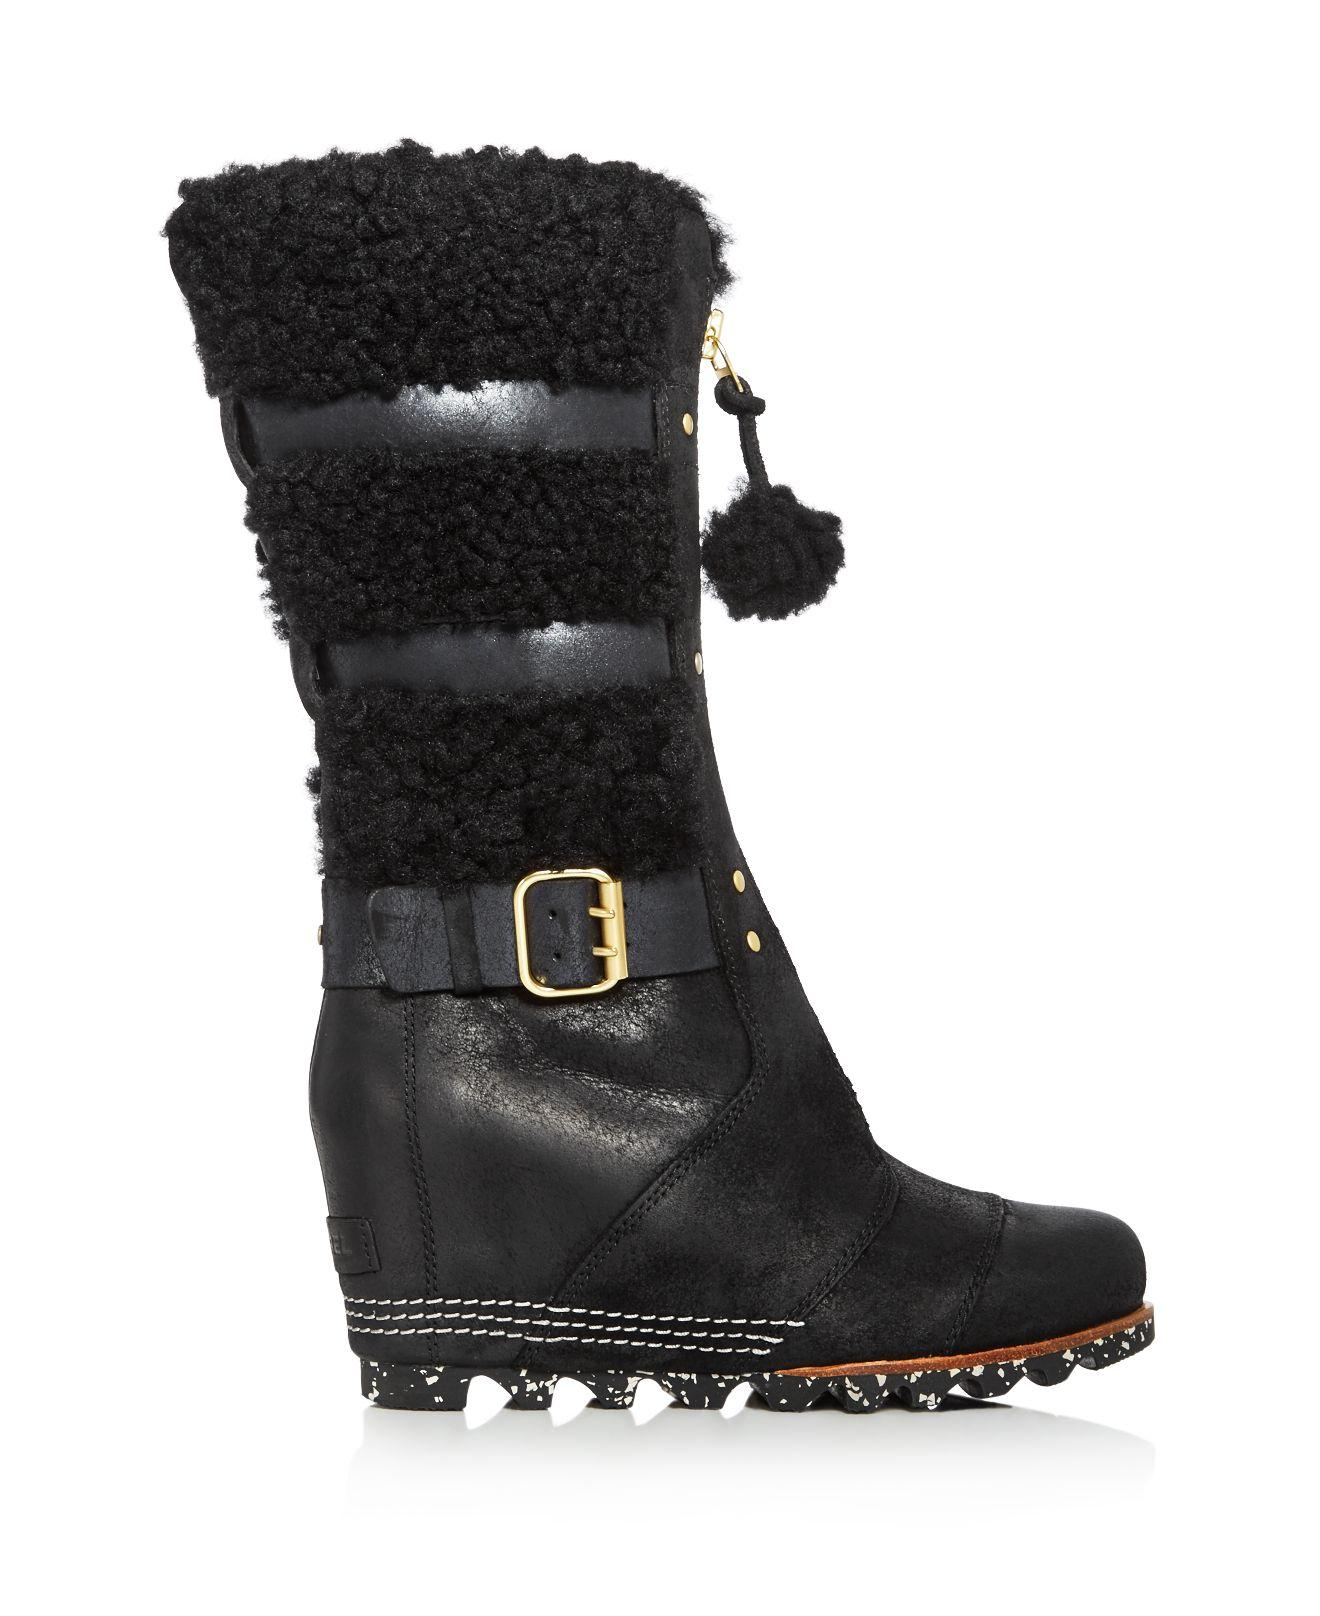 Sorel Helen Holiday Shearling Wedge Boots in Black